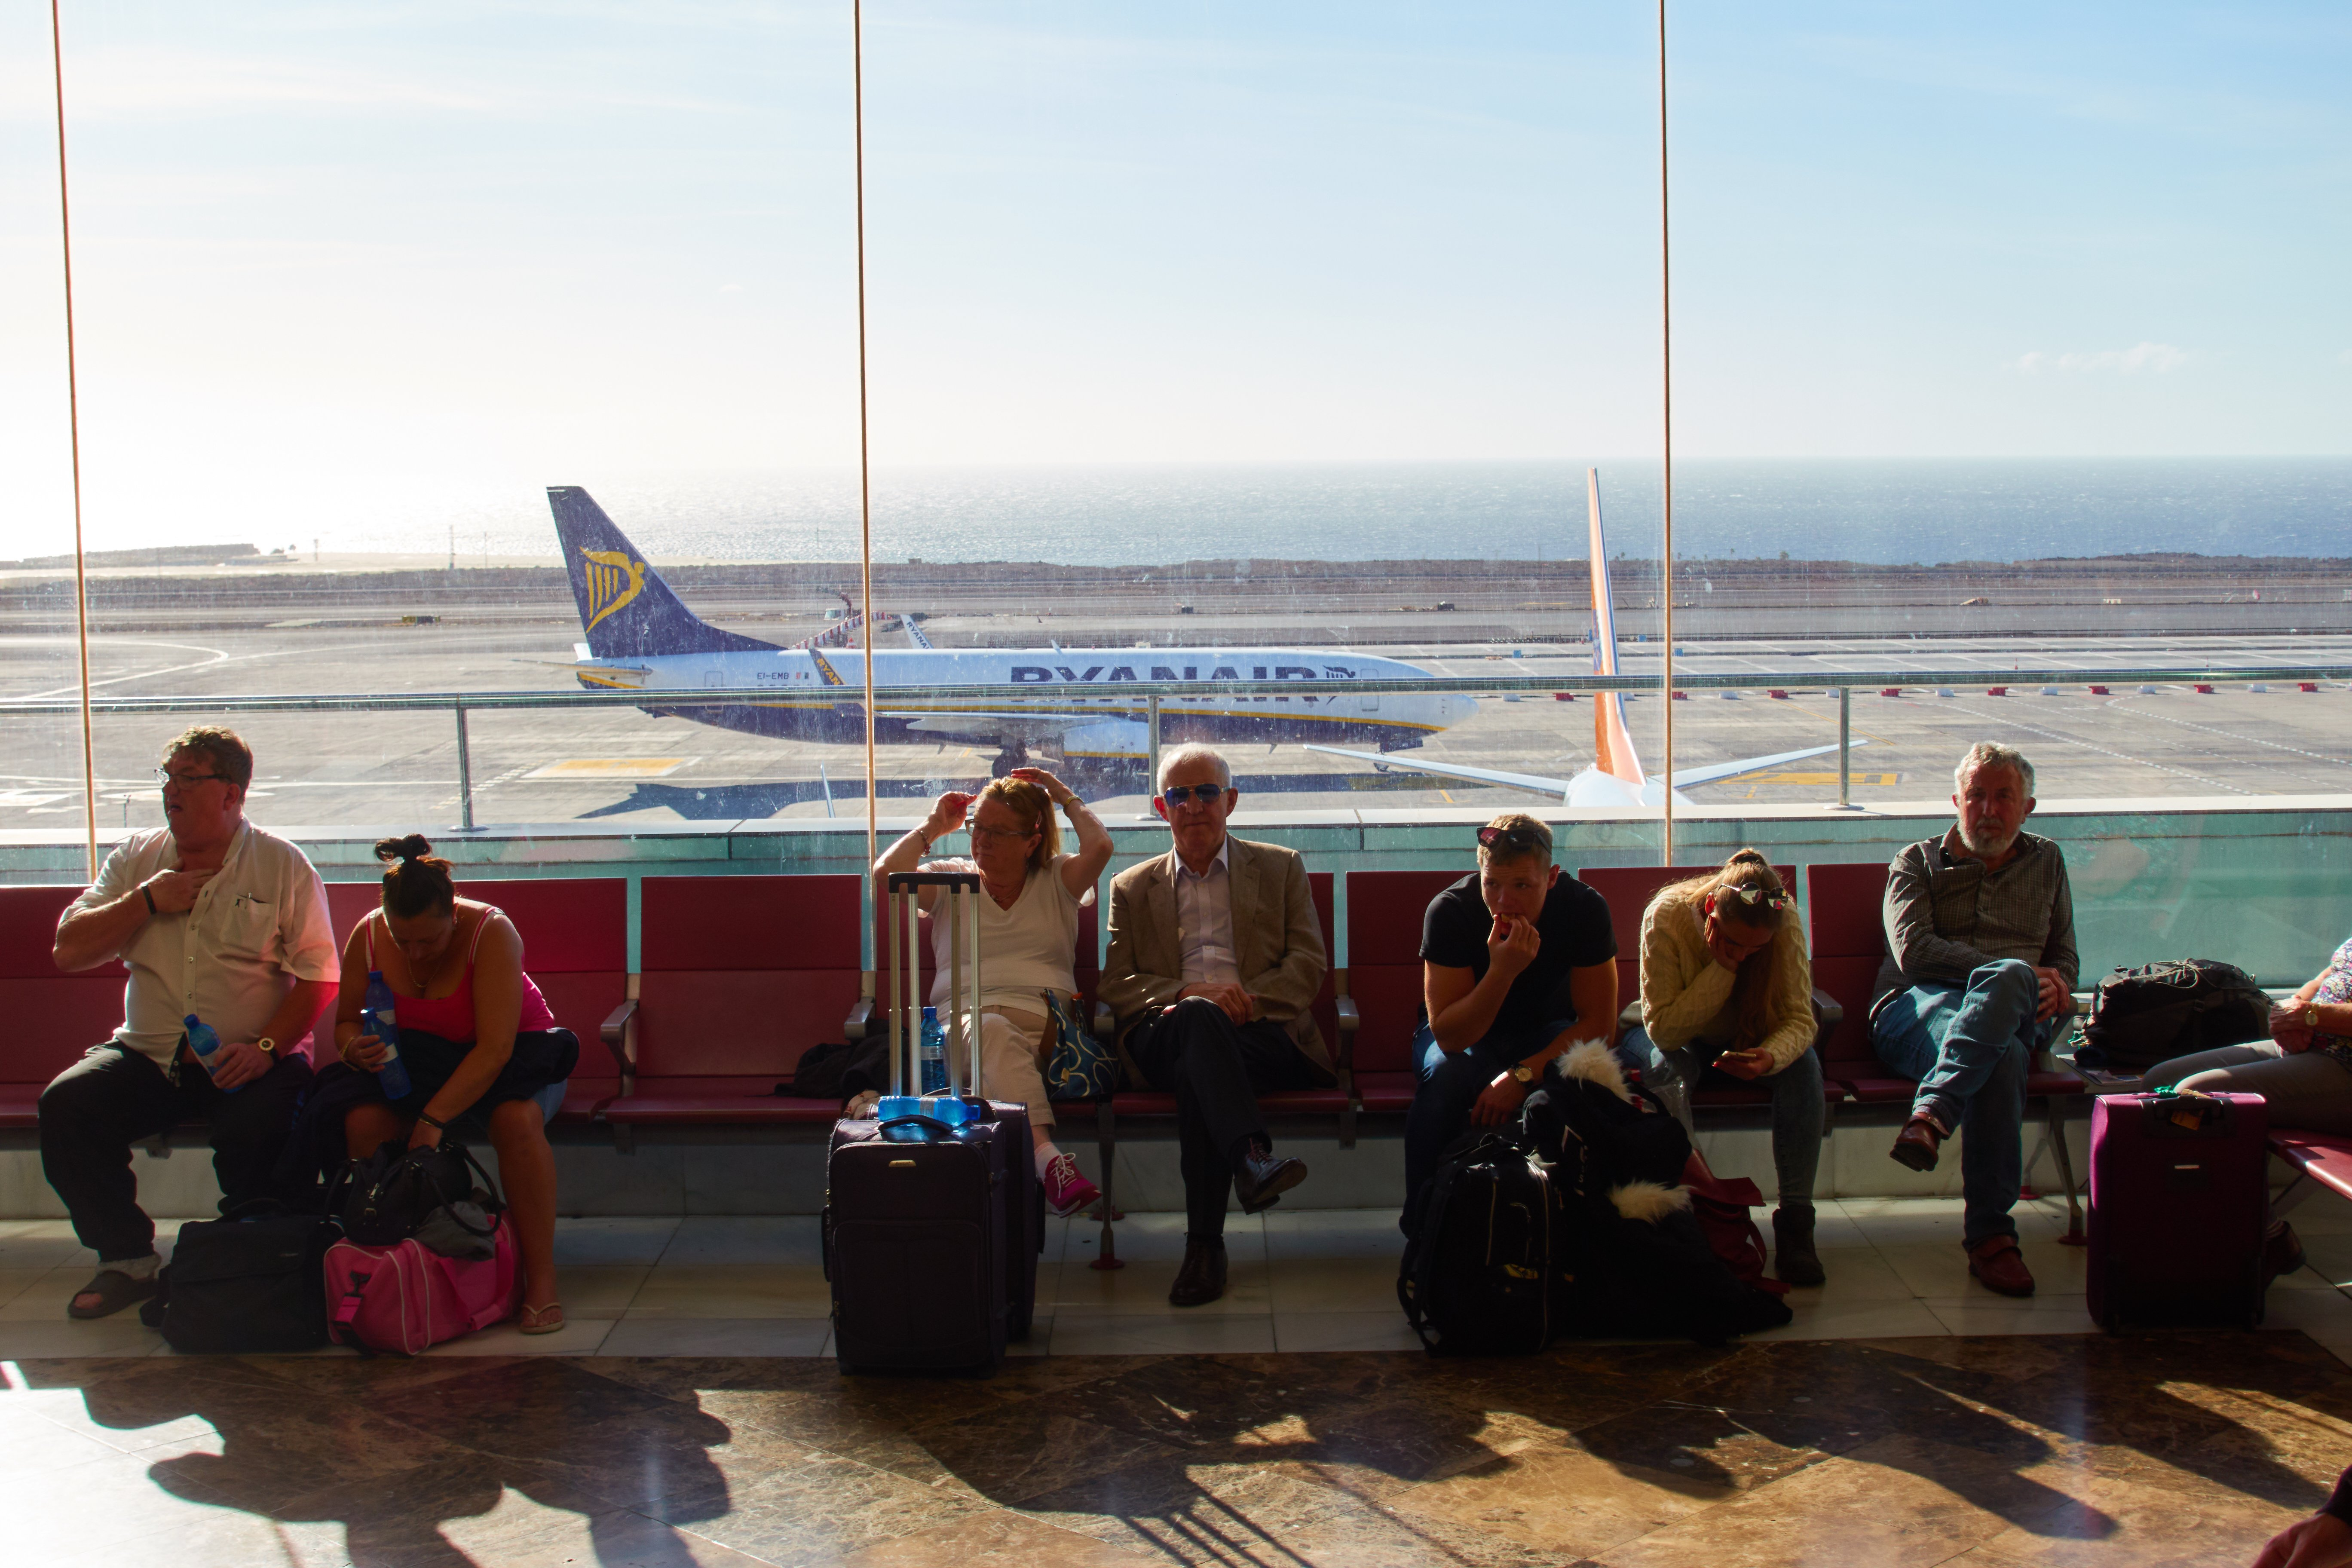 Tourists at the Reina Sofia Airport Tenerife, in Spain | Photo: Getty Images